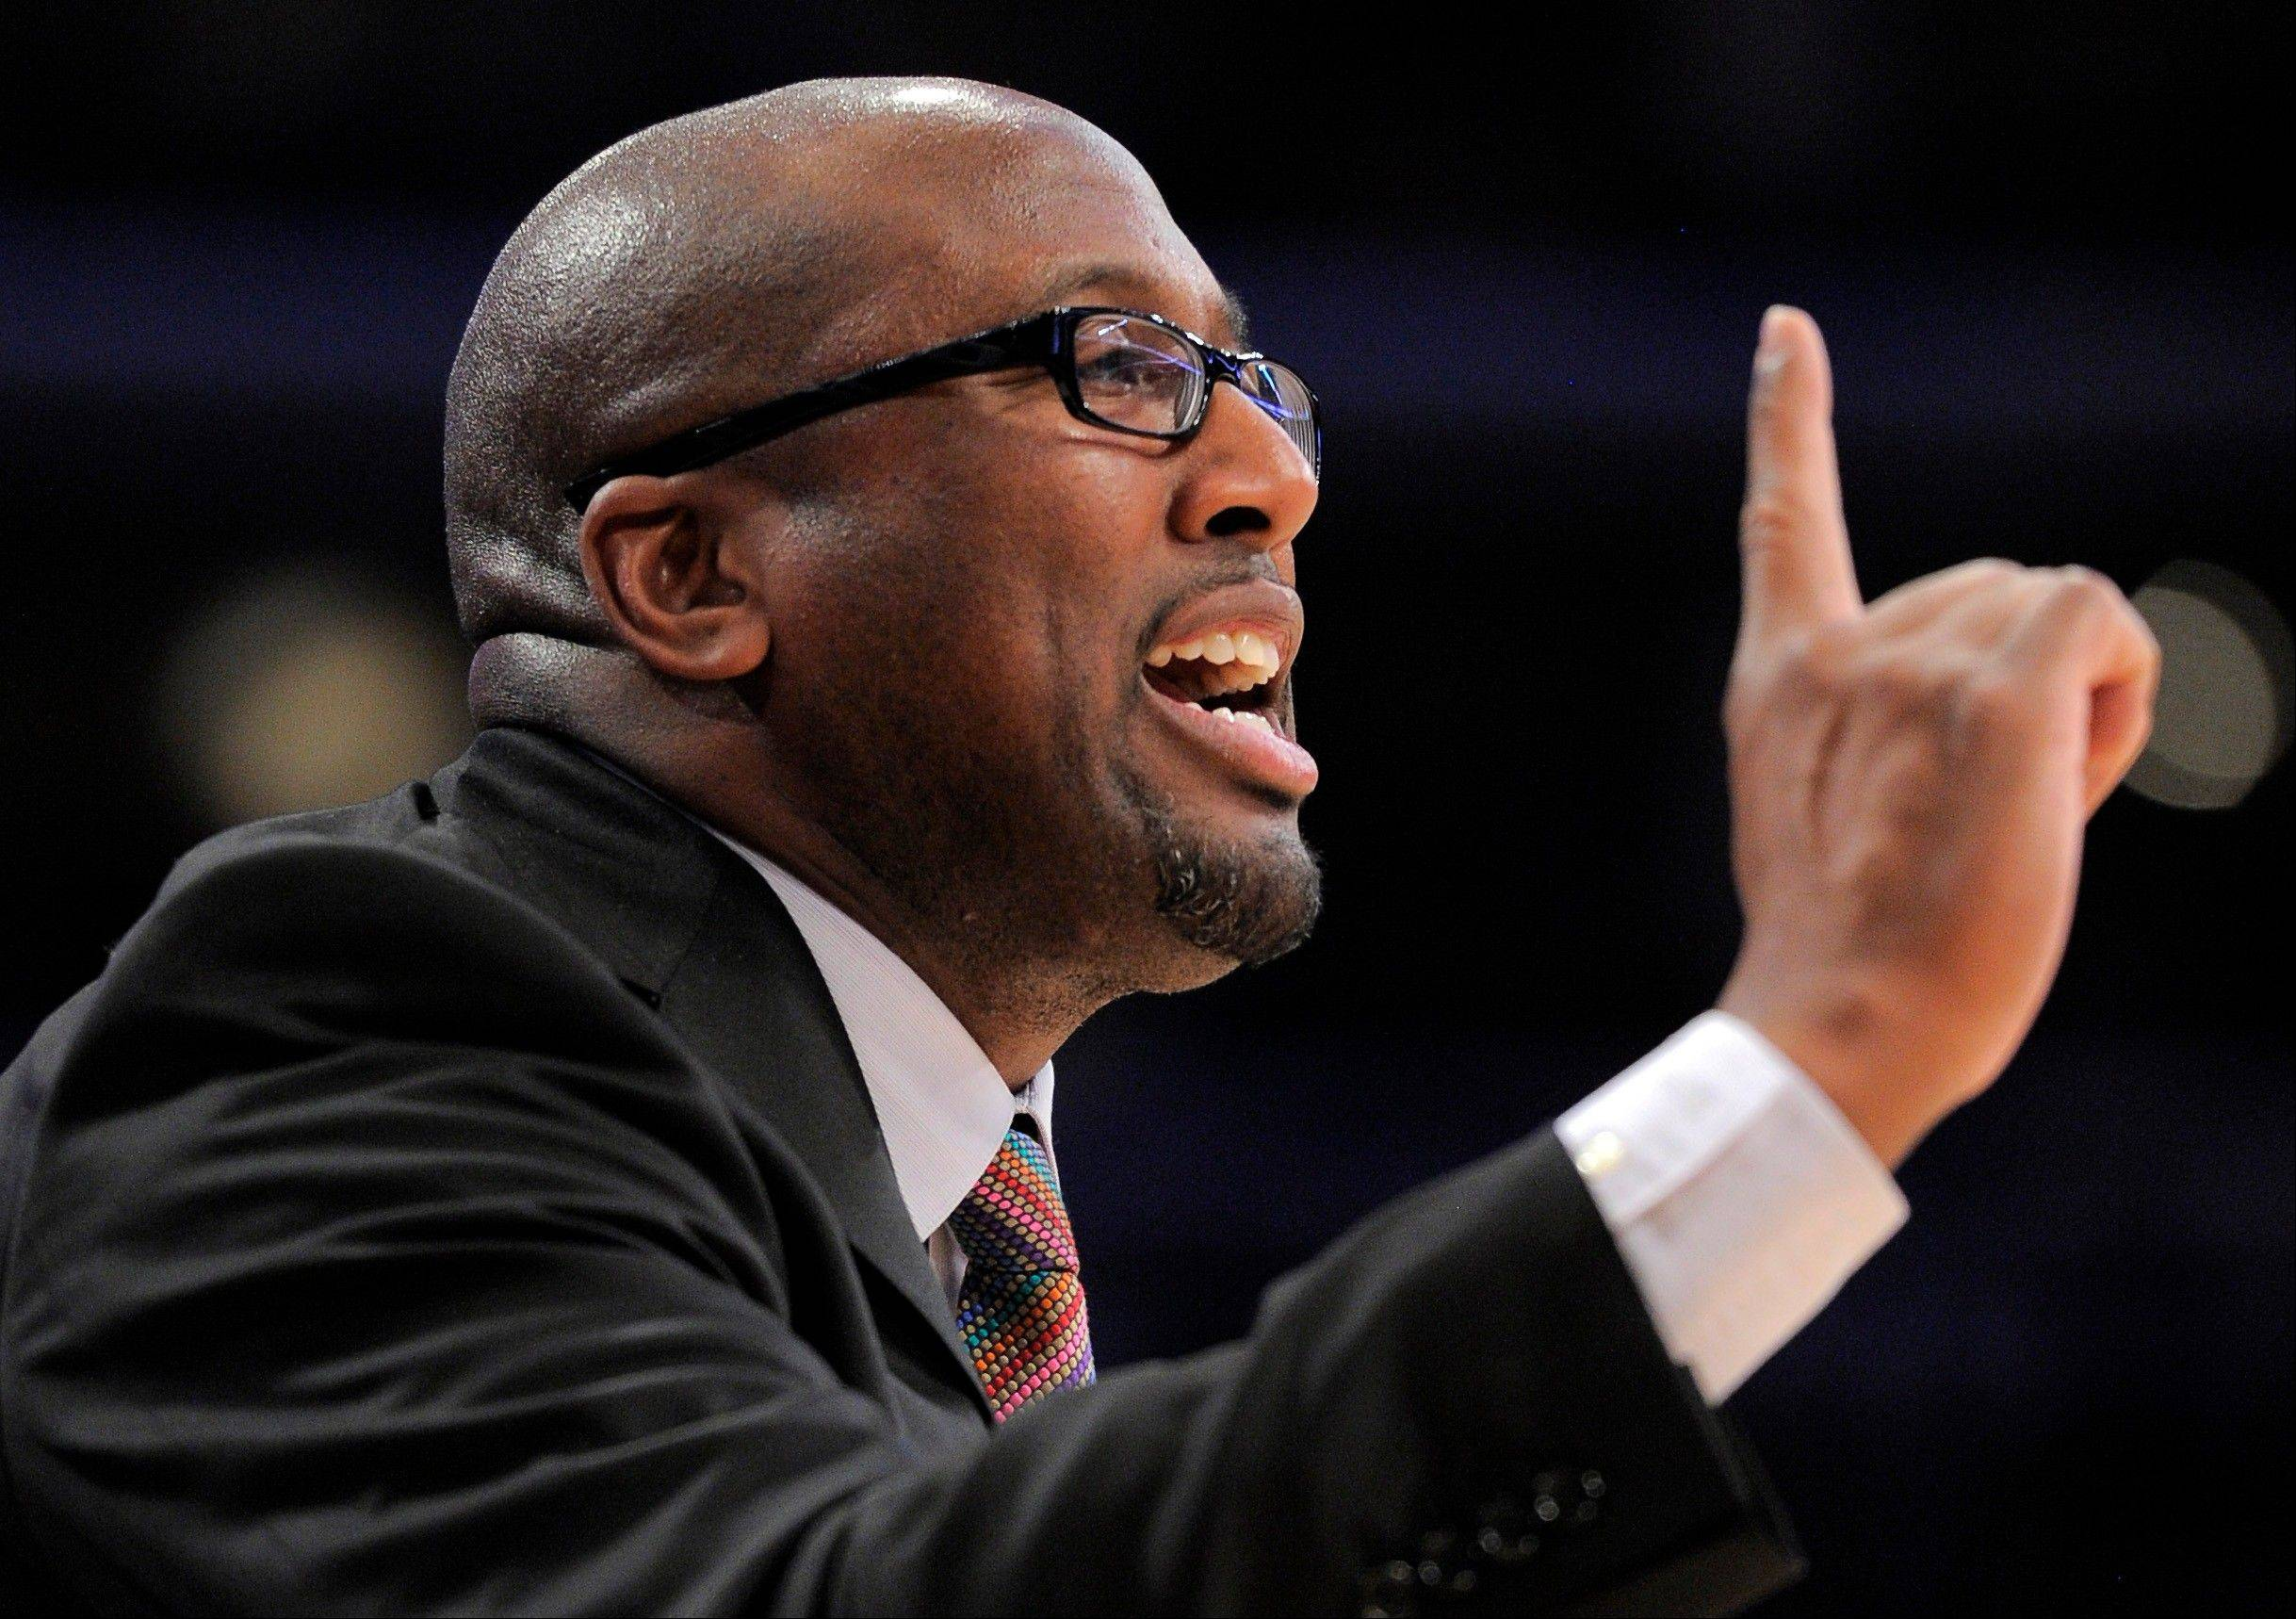 FILE - In this Dec. 25, 2011 file photo, Los Angeles Lakers coach Mike Brown gestures during the second half of the Lakers' NBA basketball game against the Chicago Bulls, in Los Angeles. The Cavaliers intend to speak with former coach Brown about returning to the team. Brown was fired by Cleveland three years ago and replaced by Byron Scott, who was let go by the Cavs on Thursday after he went 64-166 in three seasons _ one of the worst stretches in team history. . (AP Photo/Mark J. Terrill, File)